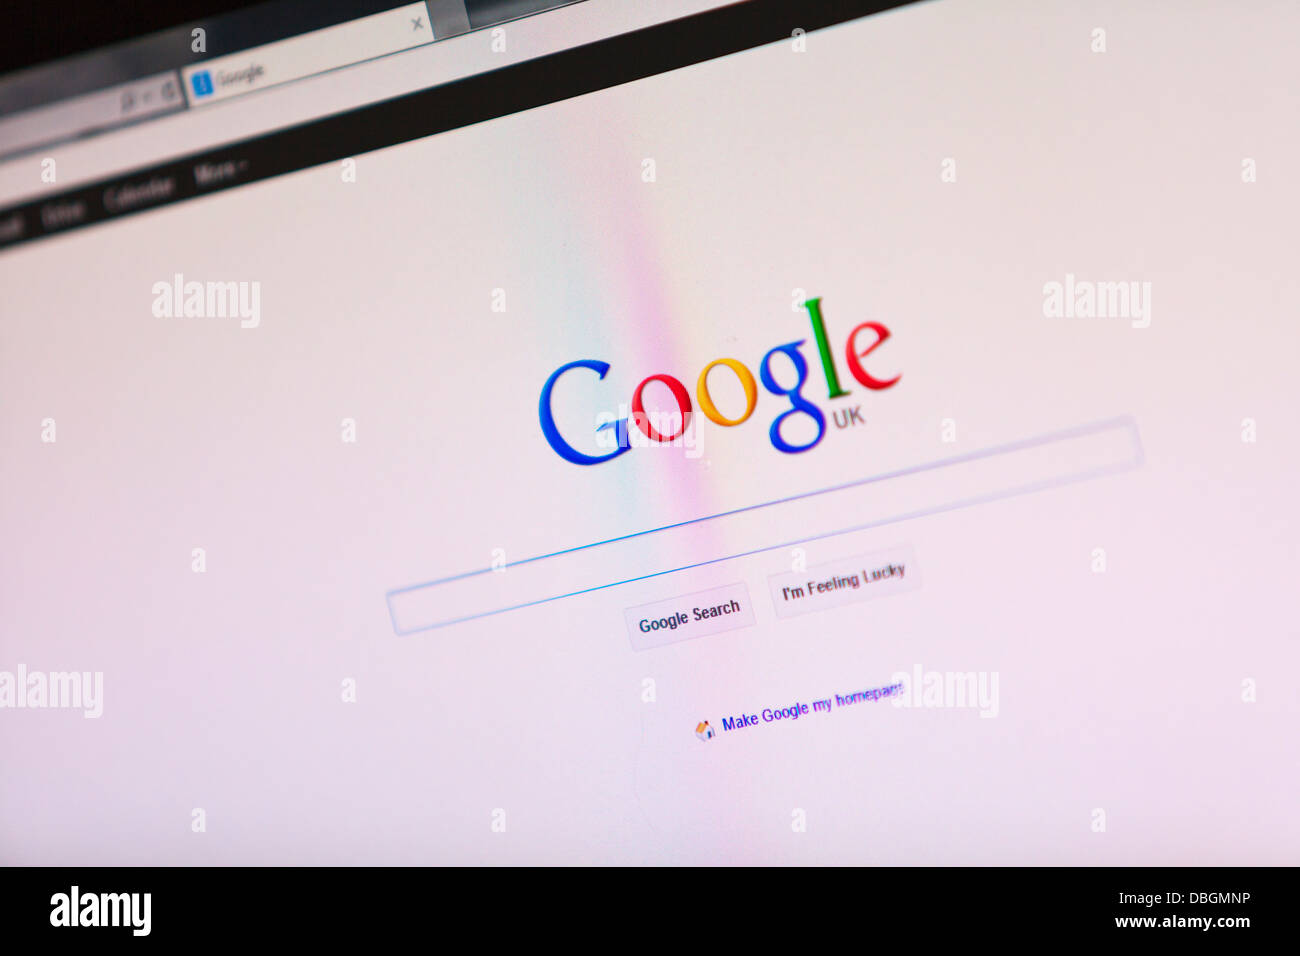 Photo Illustration of the Google logo and search engine online  service from the UK England - Stock Image